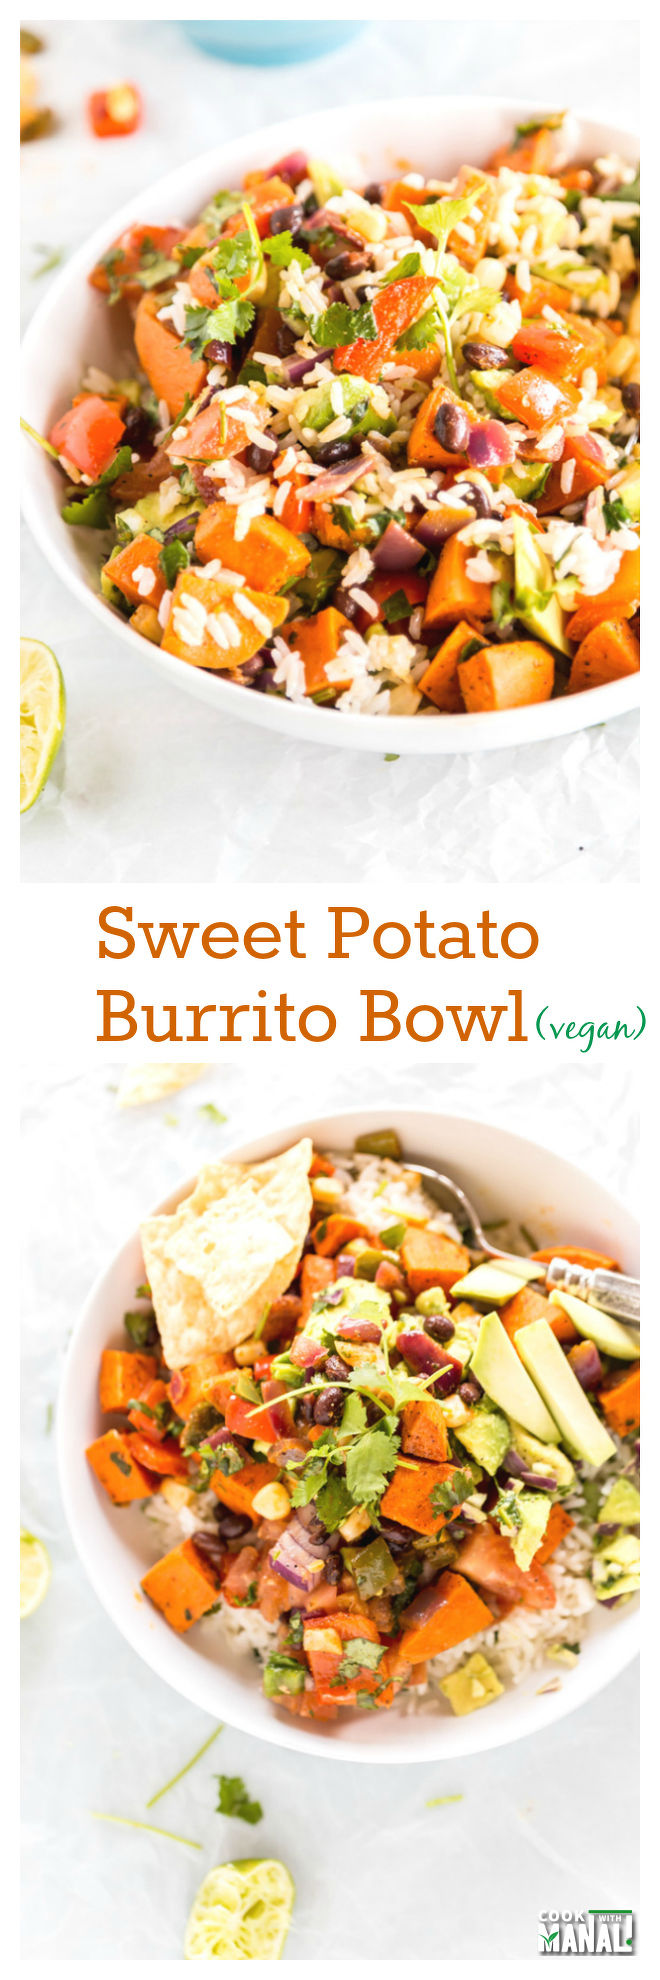 Sweet Potato Burrito Bowl Collage